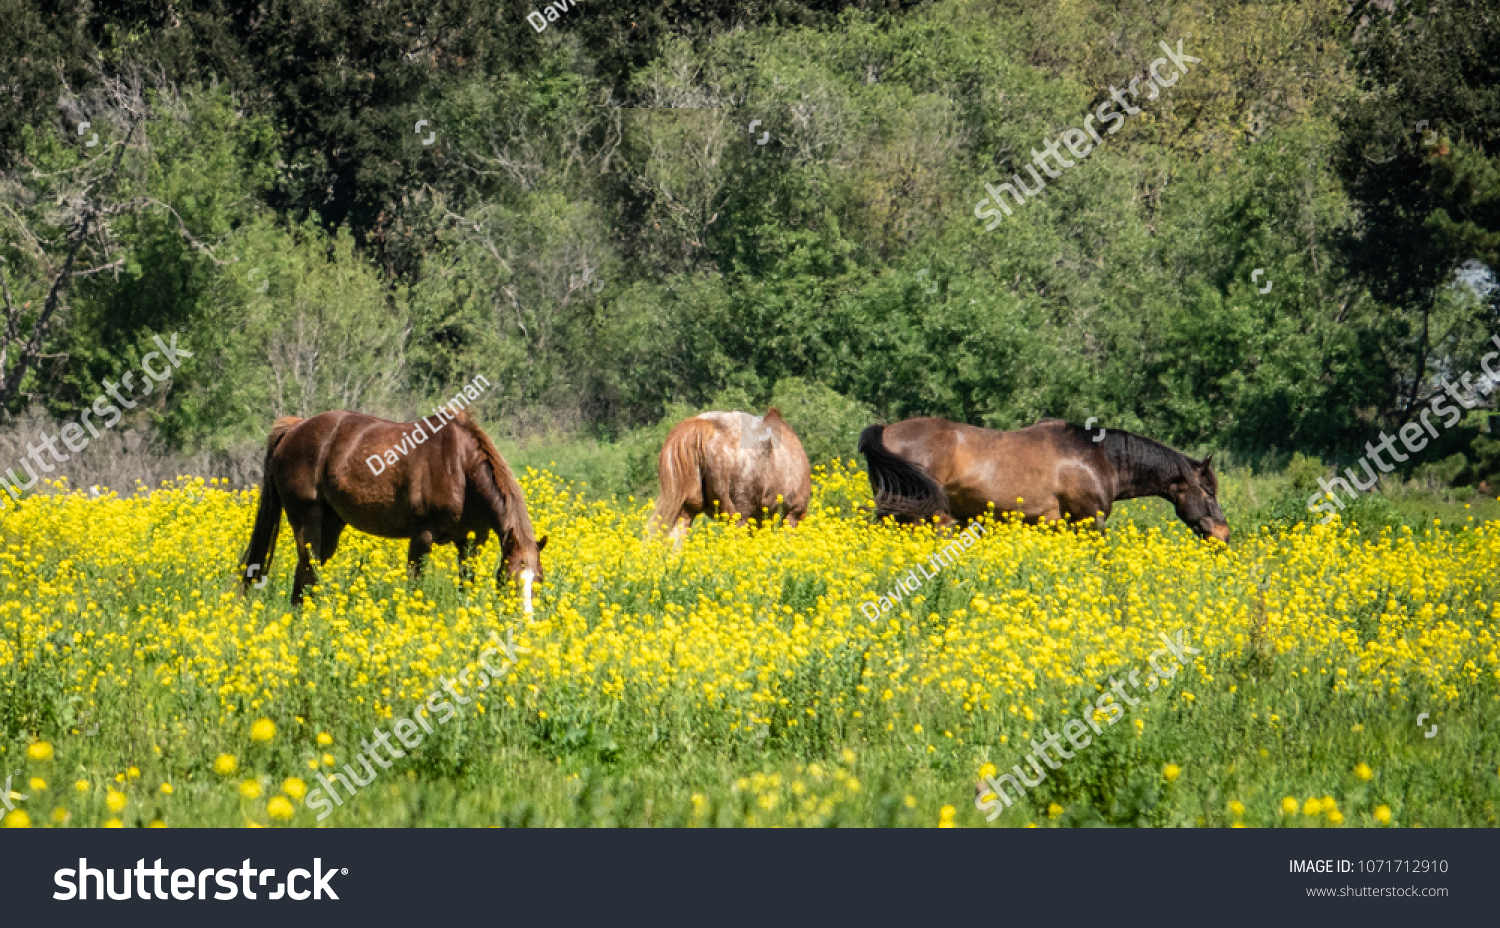 Horses graze in a pasture of yellow wildflowers on a ranch in the hills of Monterey, California.